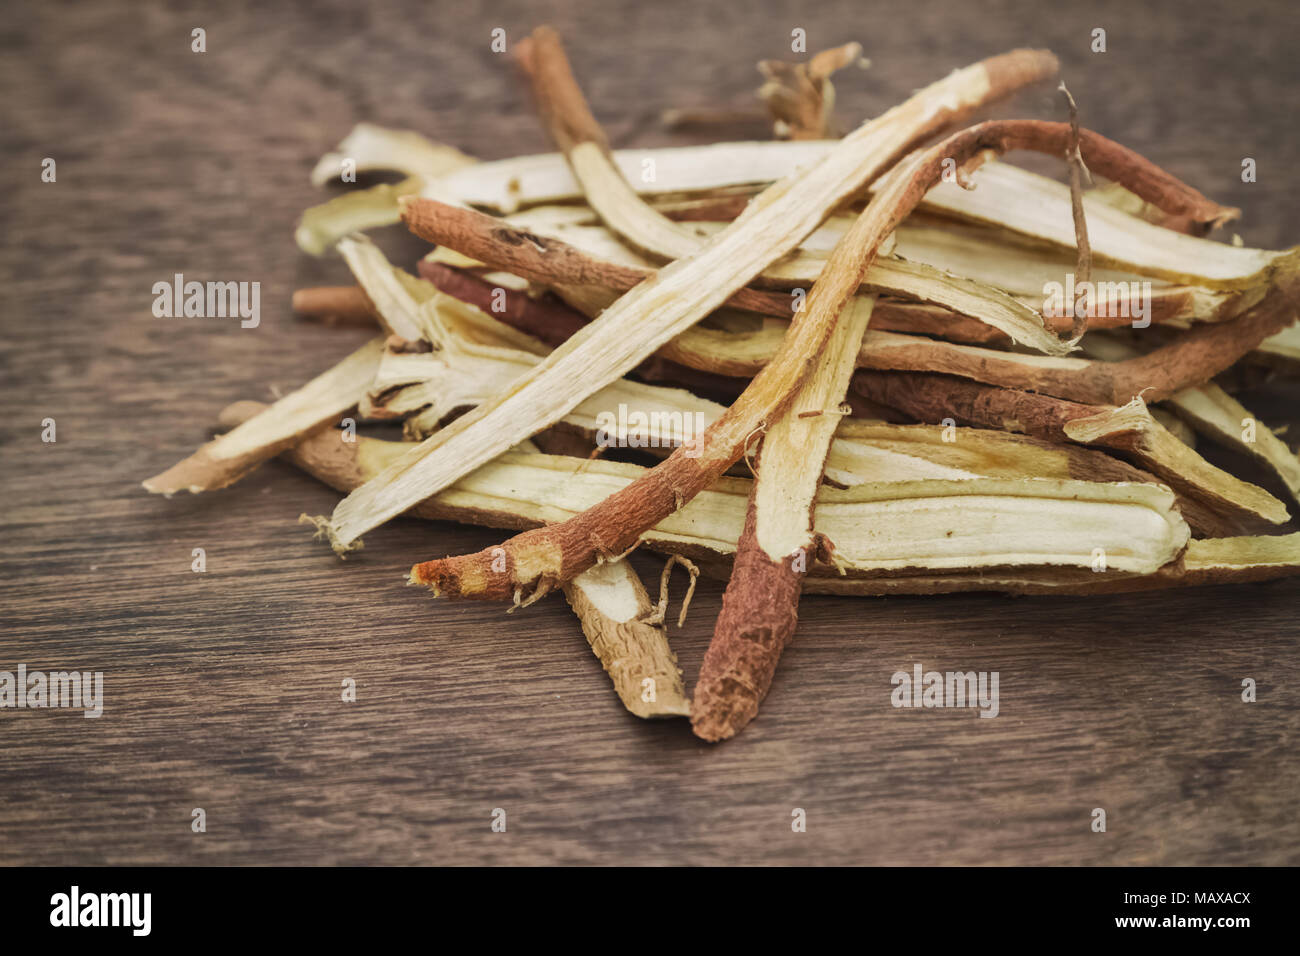 Liquorice root baked used in chinese herbal medicine - Stock Image